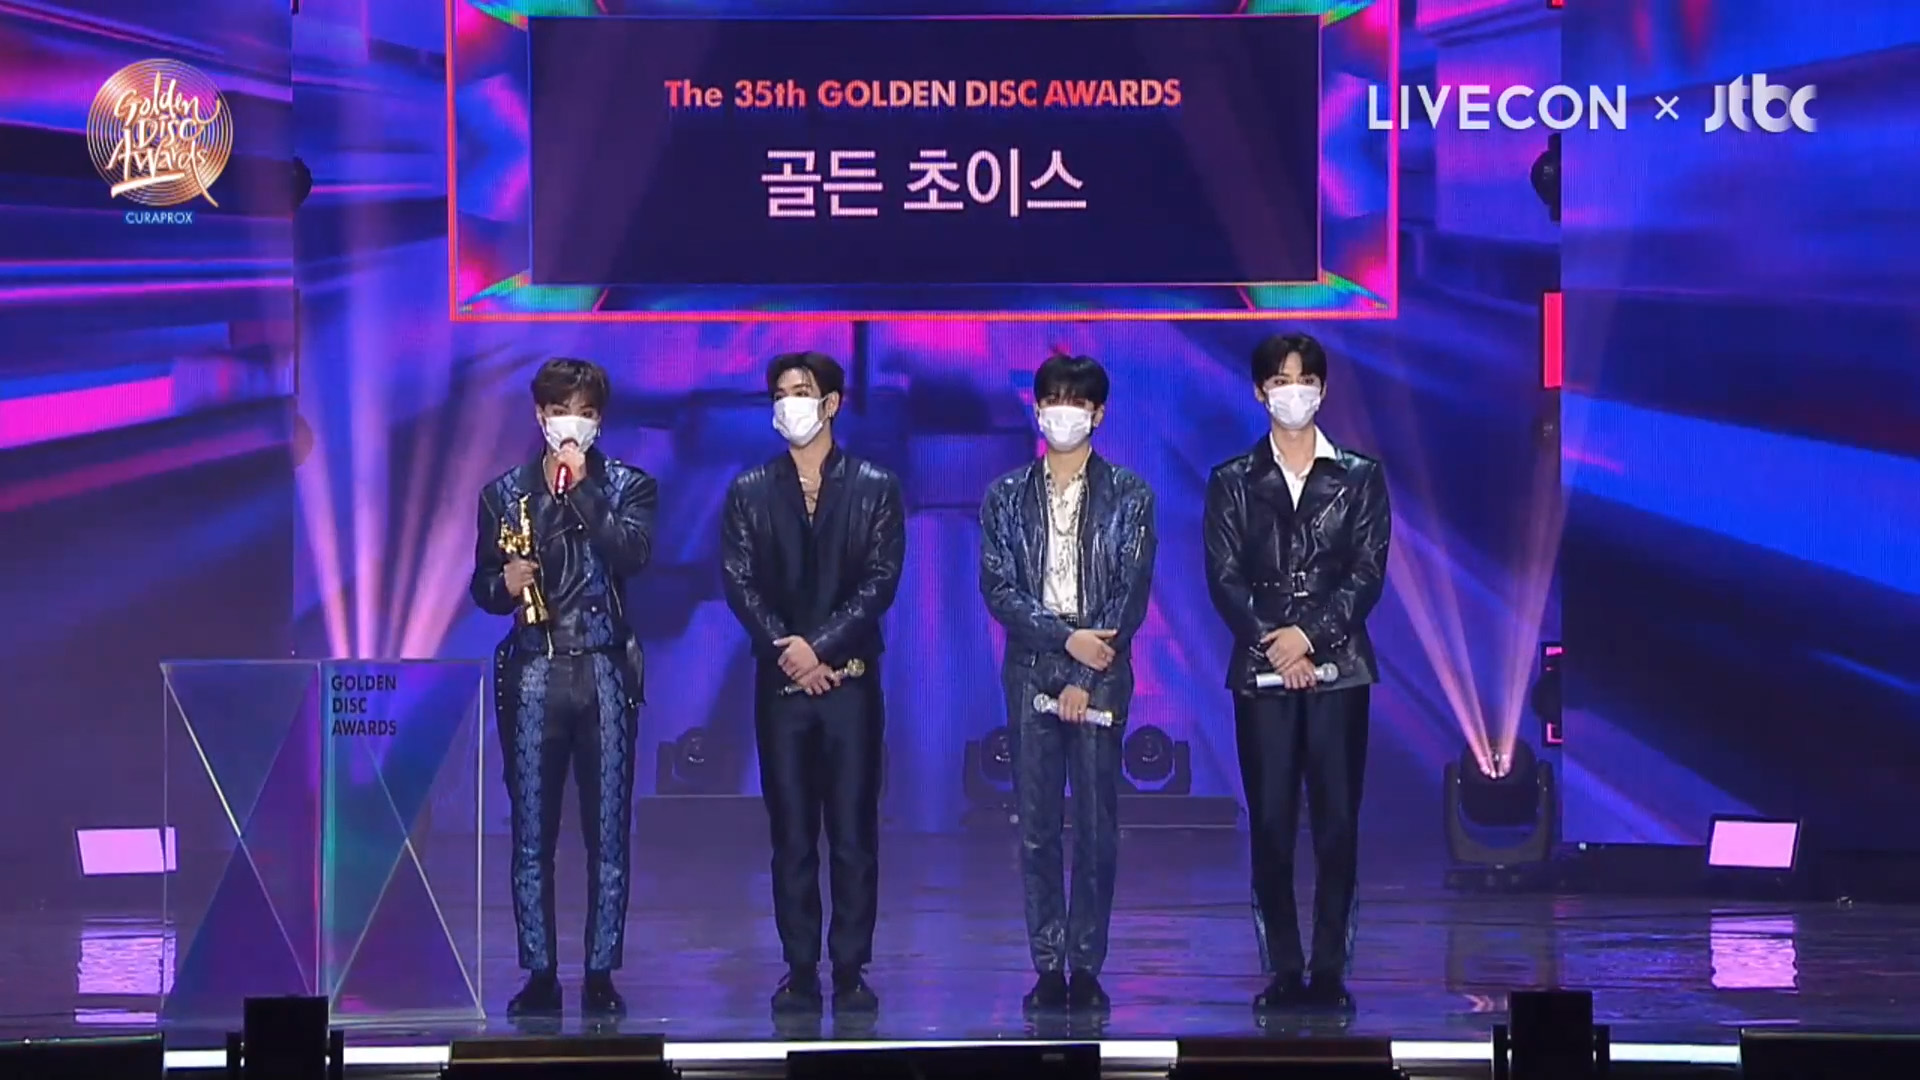 35th GOLDEN DISC AWARDS 2021 (GDA) Day 1: Winners | Kpopmap - Kpop, Kdrama  and Trend Stories Coverage